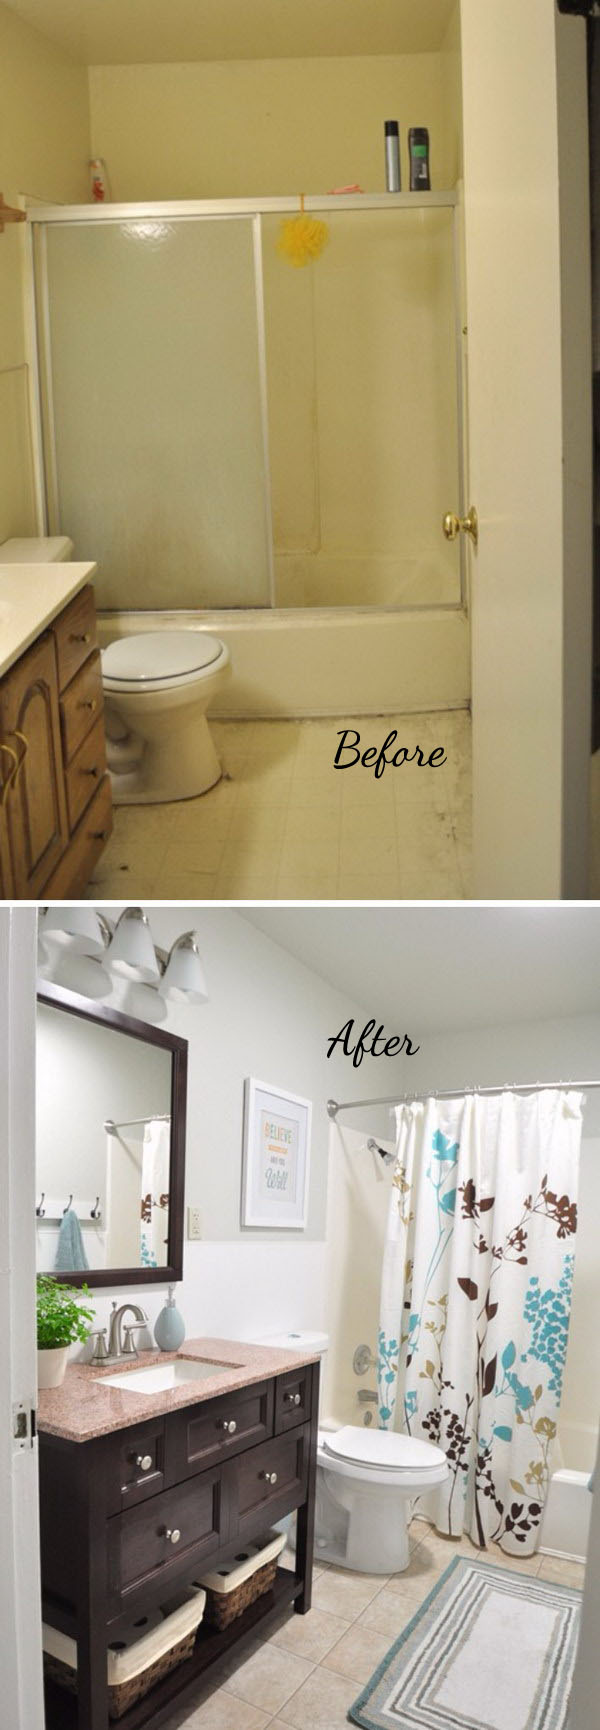 33 inspirational small bathroom remodel before and after for Bathroom renovation before and after